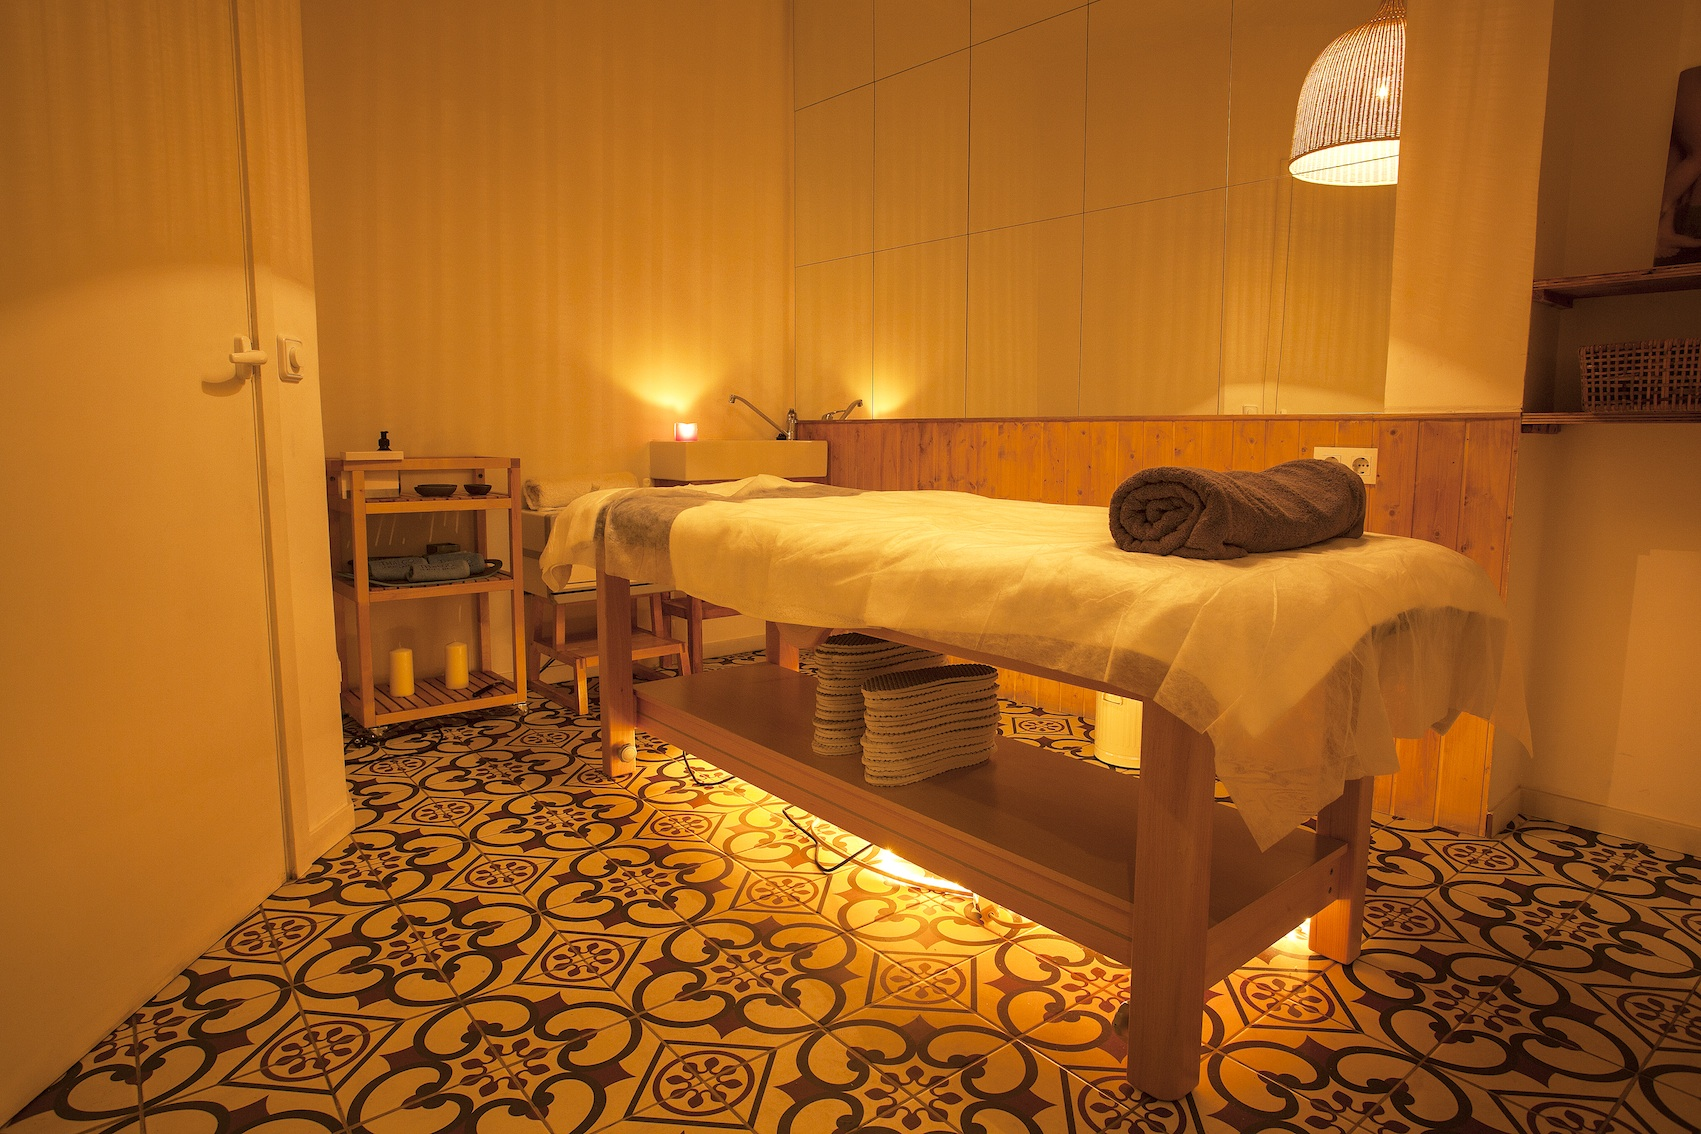 Barcelona 39 s most relaxing spas for A beautiful you salon